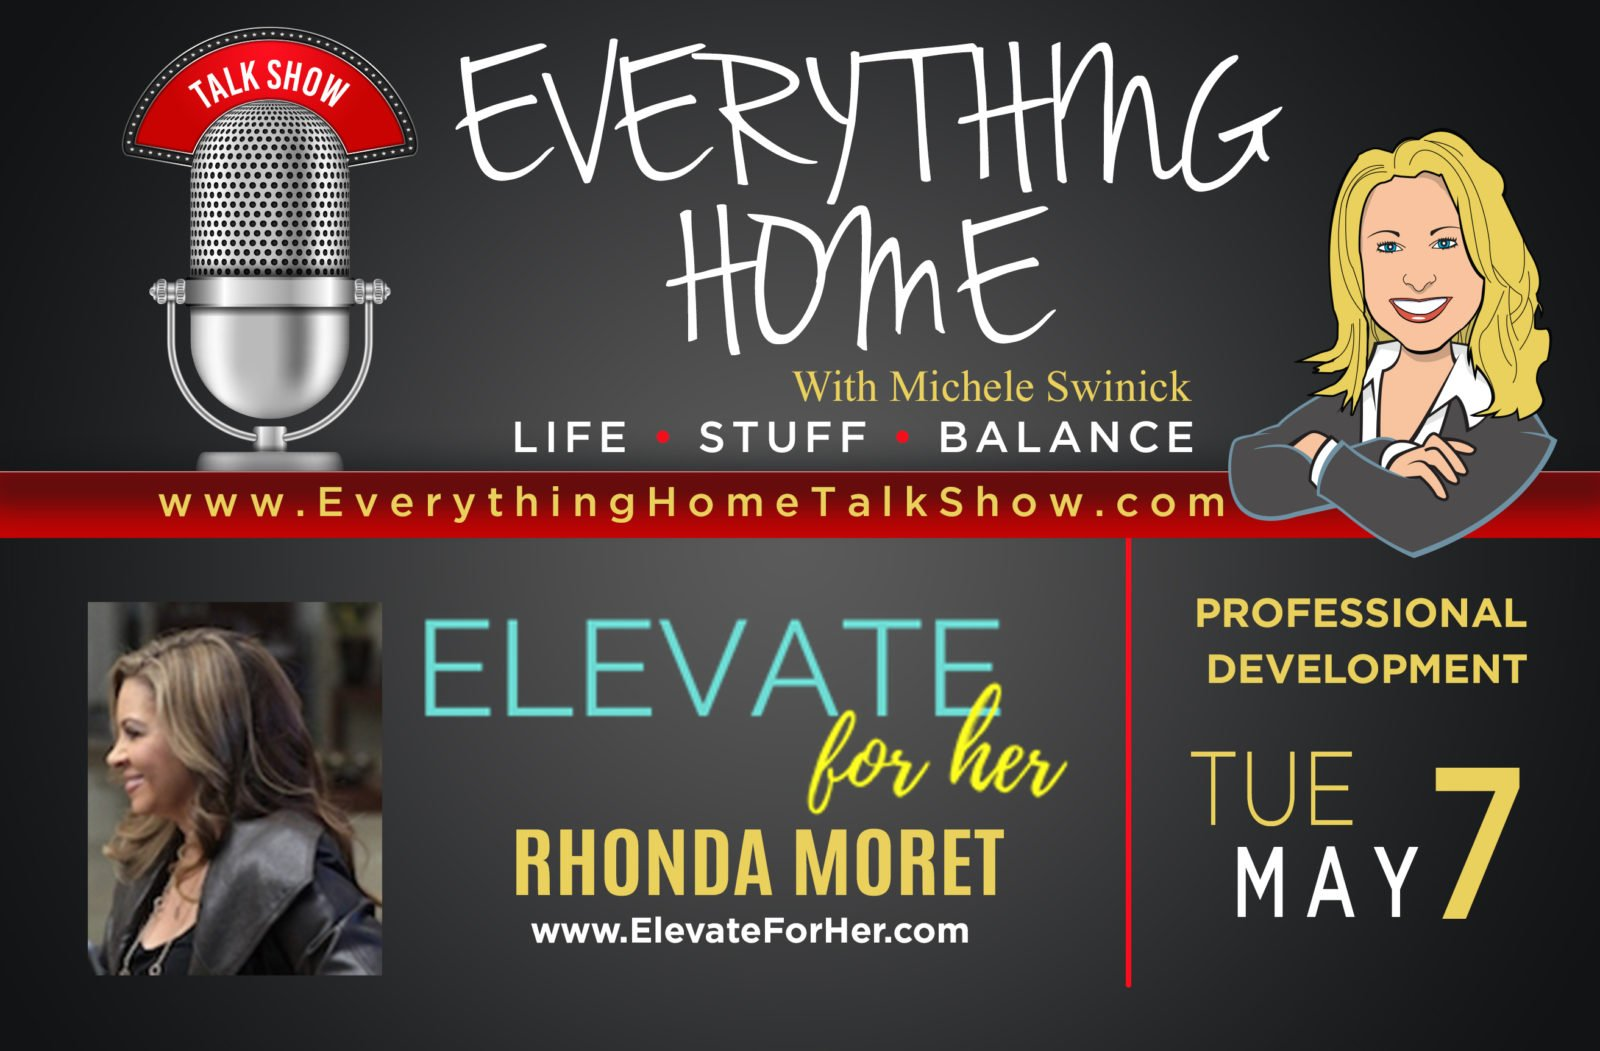 Everything Home Talk Radio Show & Podcast - Rhonda Moret - May 7, 2019 - Promo Banner